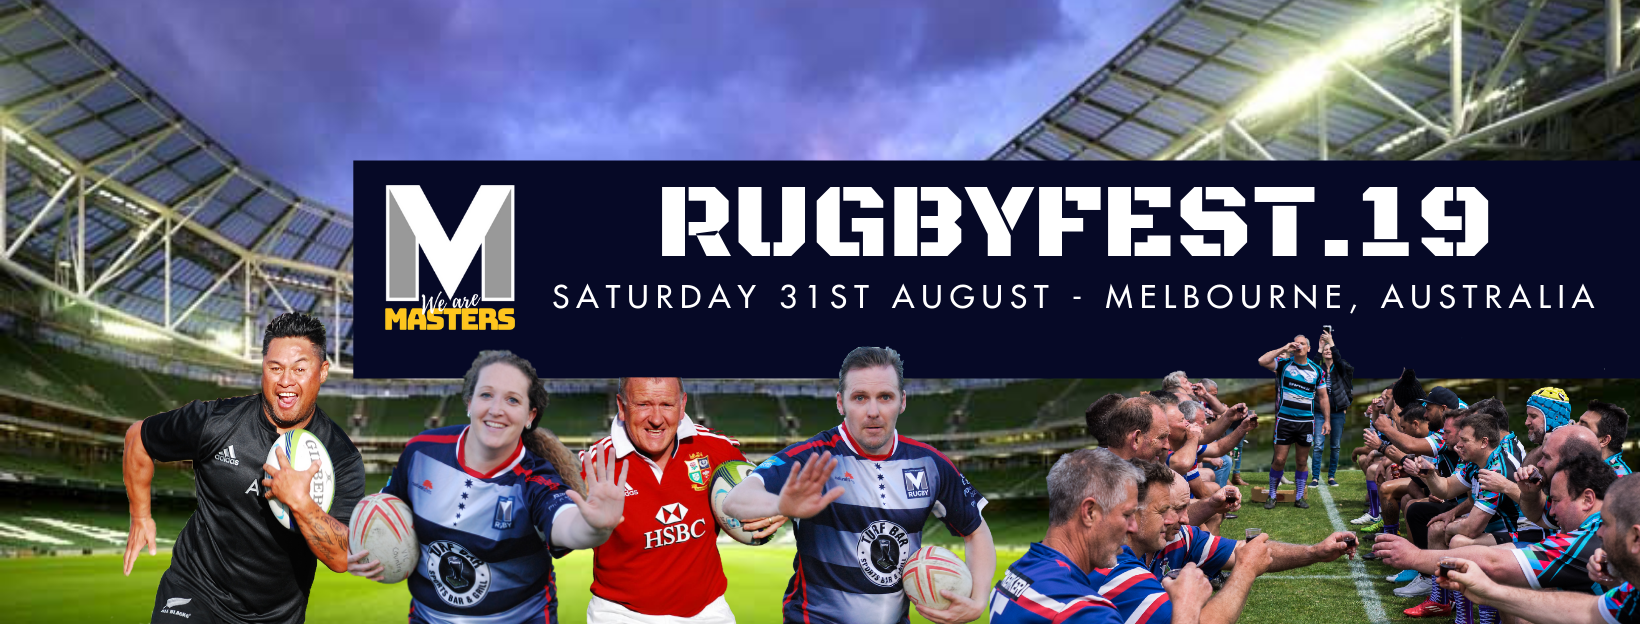 RugbyFest 2019.png